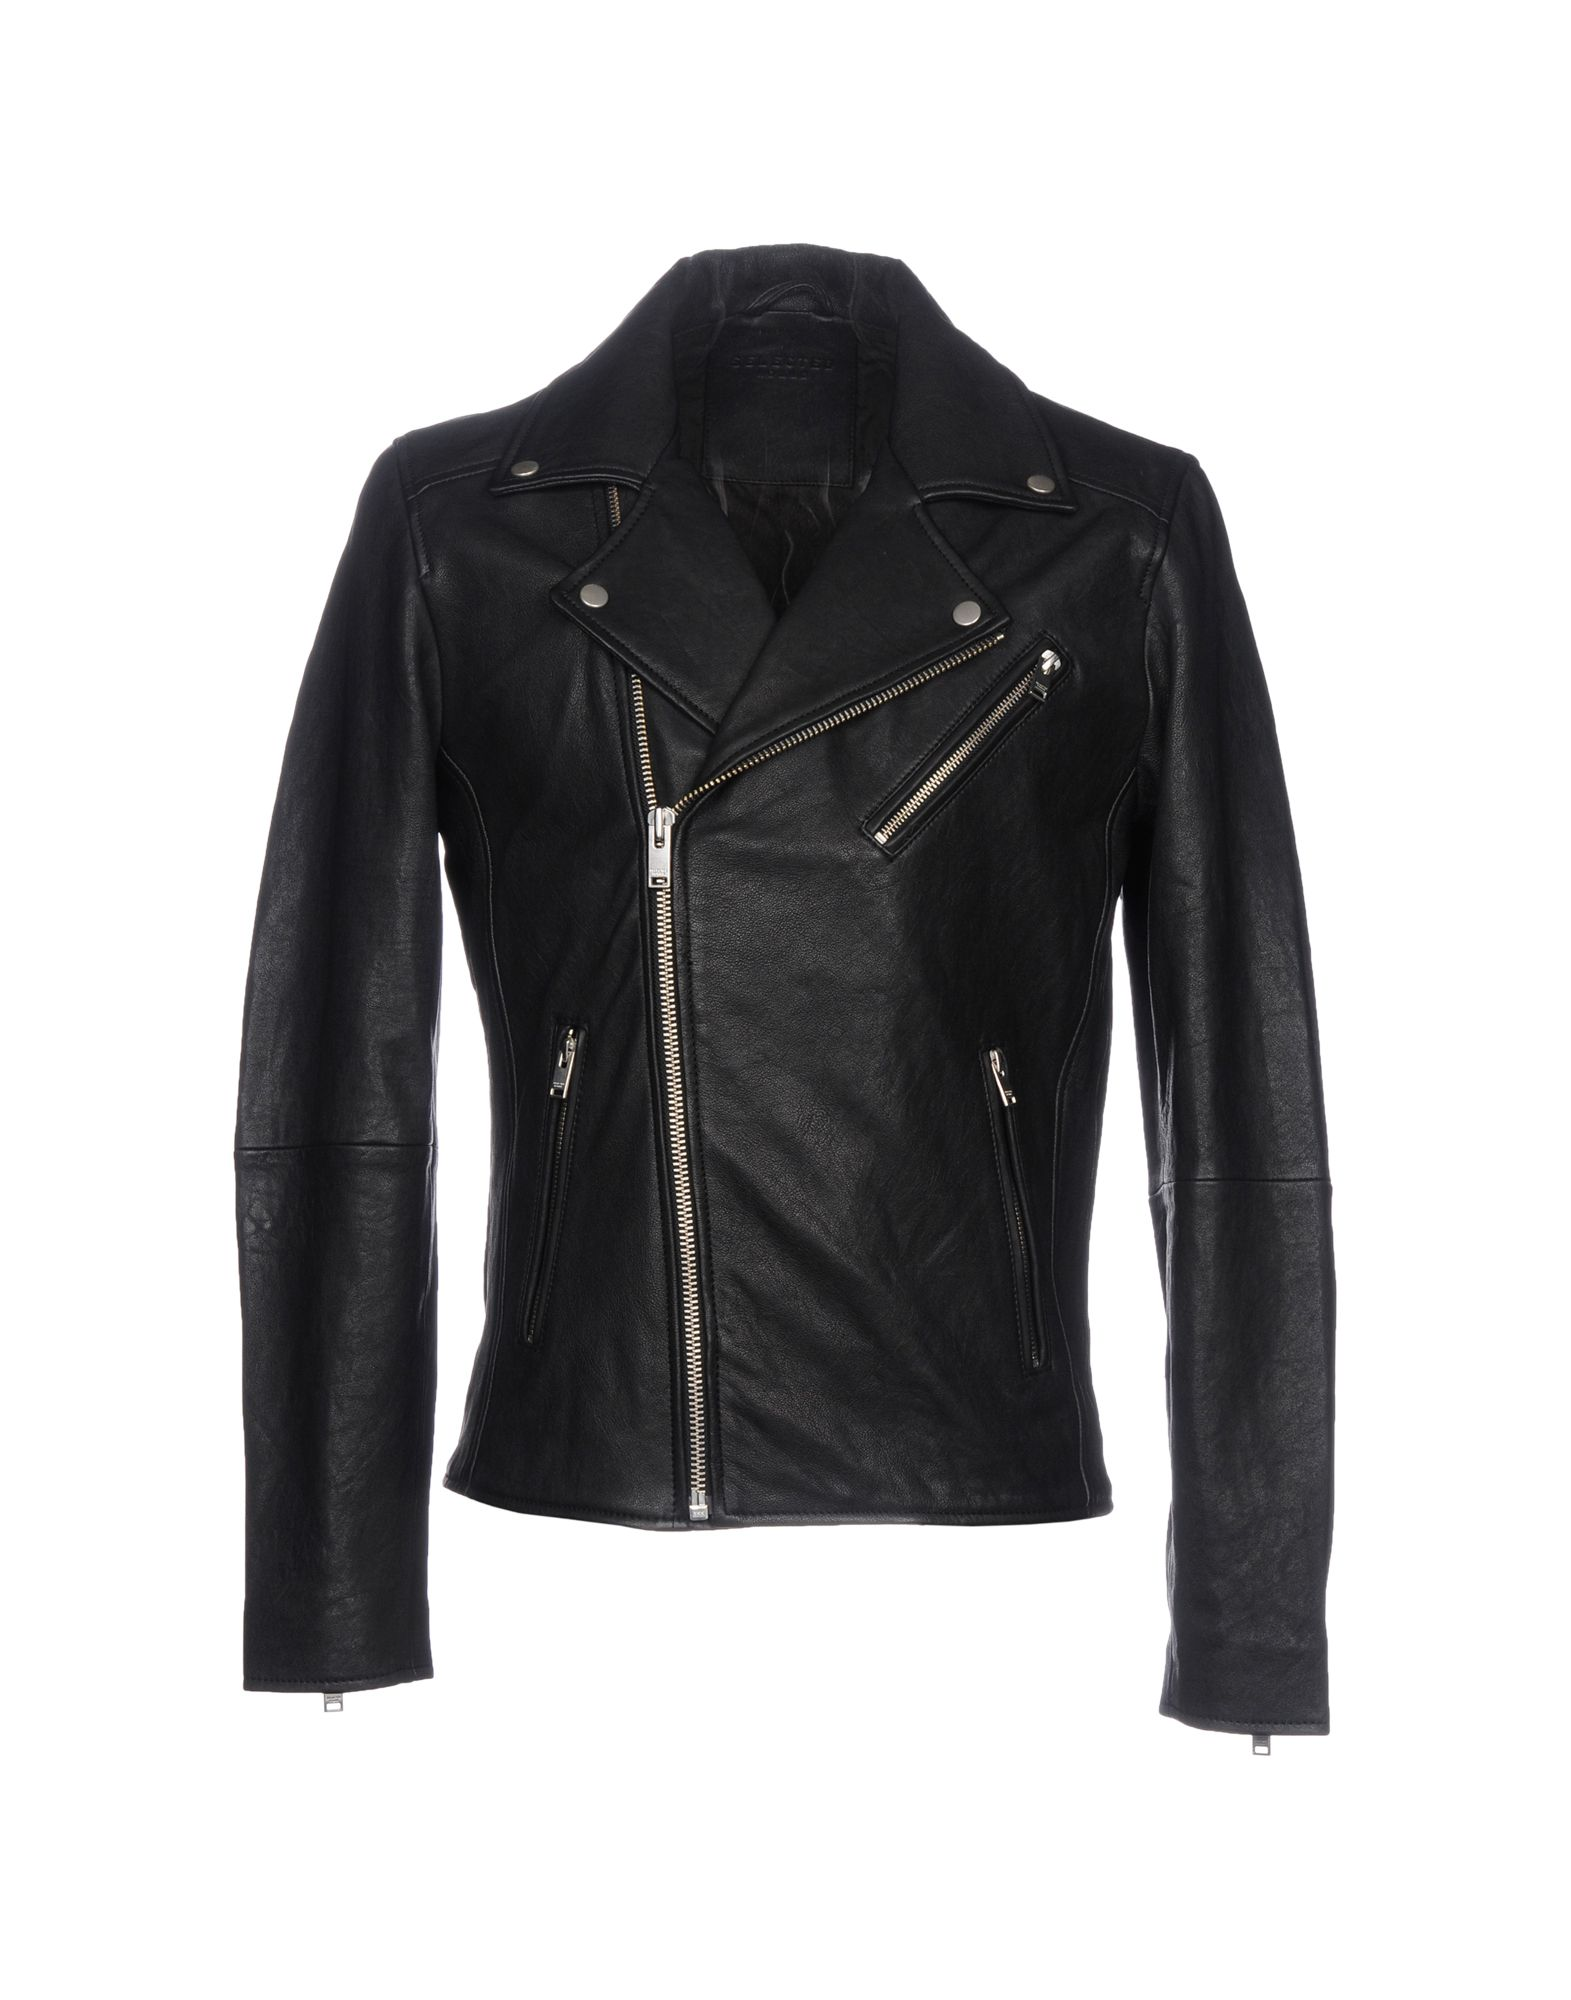 SELECTED HOMME Куртка dior homme шарф